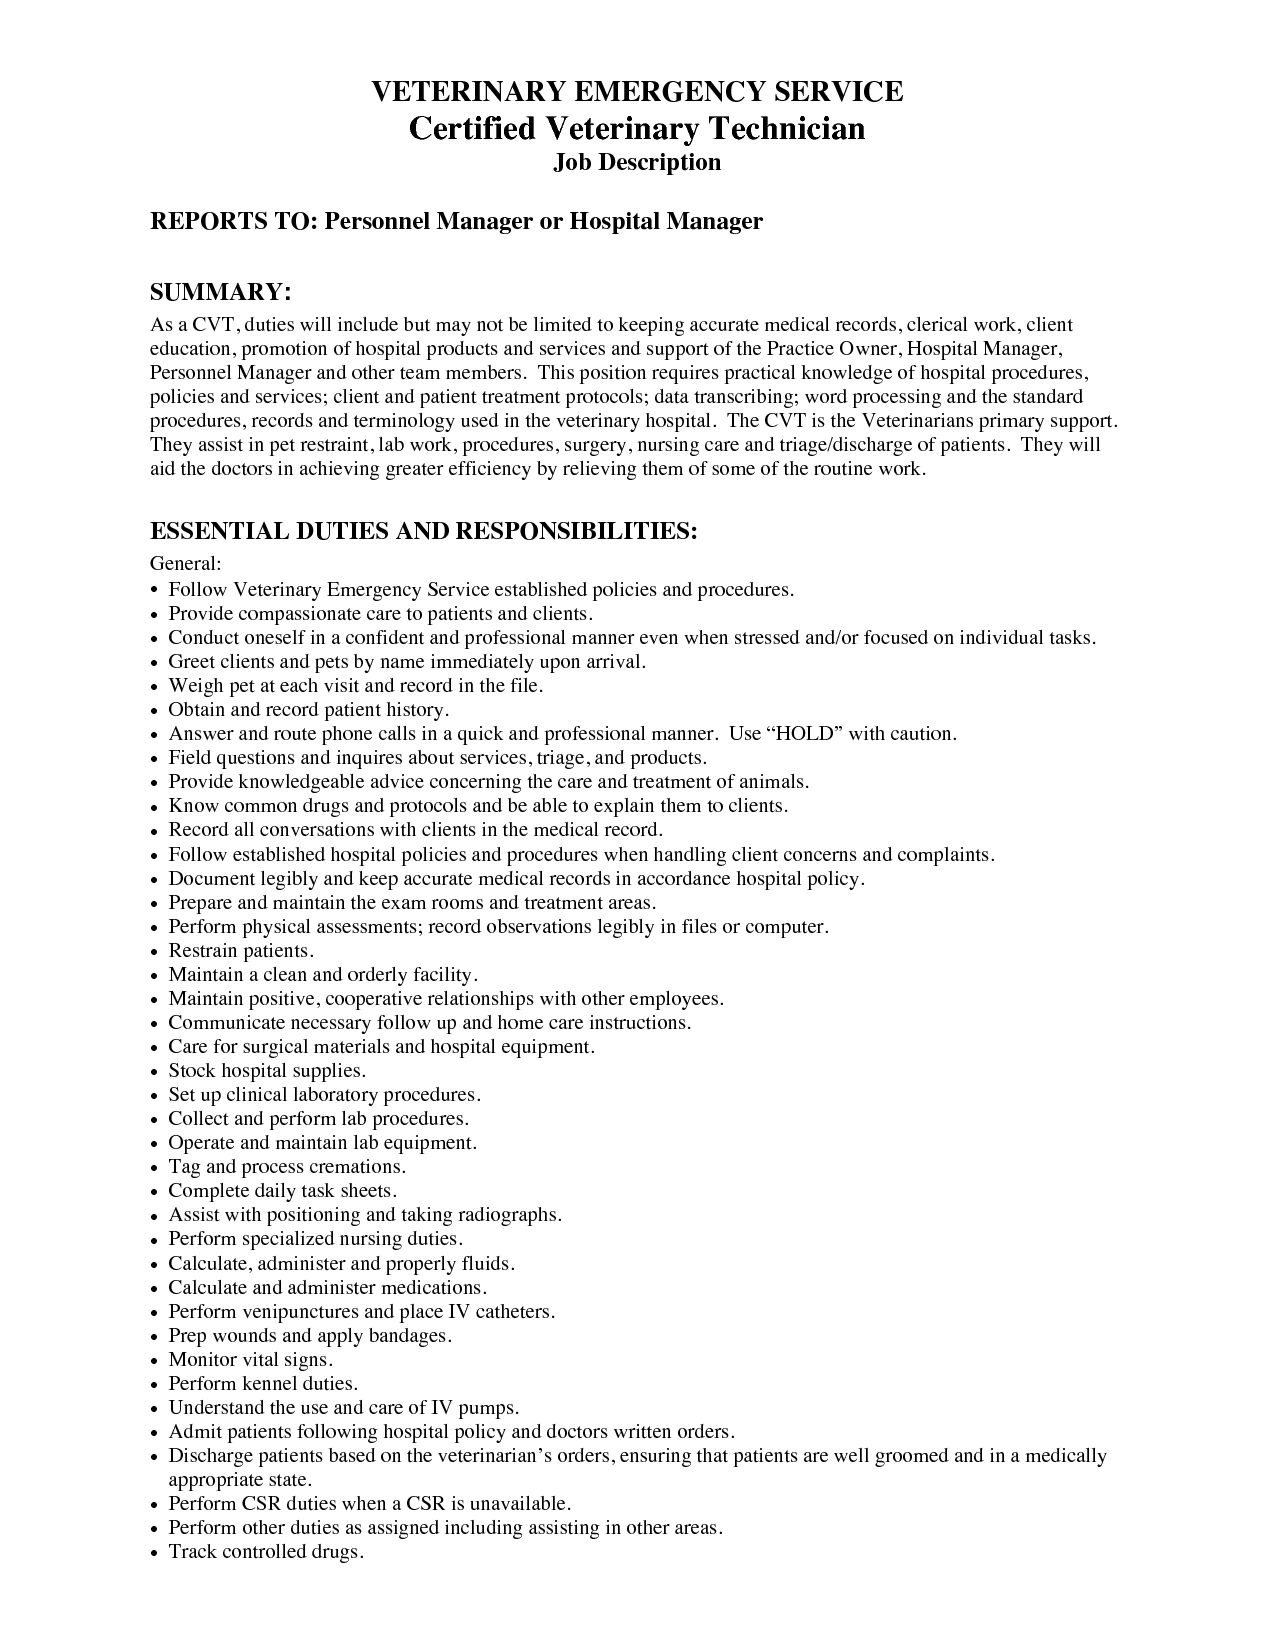 Veterinary Resume Veterinary Technician Resume  My Work  Pinterest  Veterinary